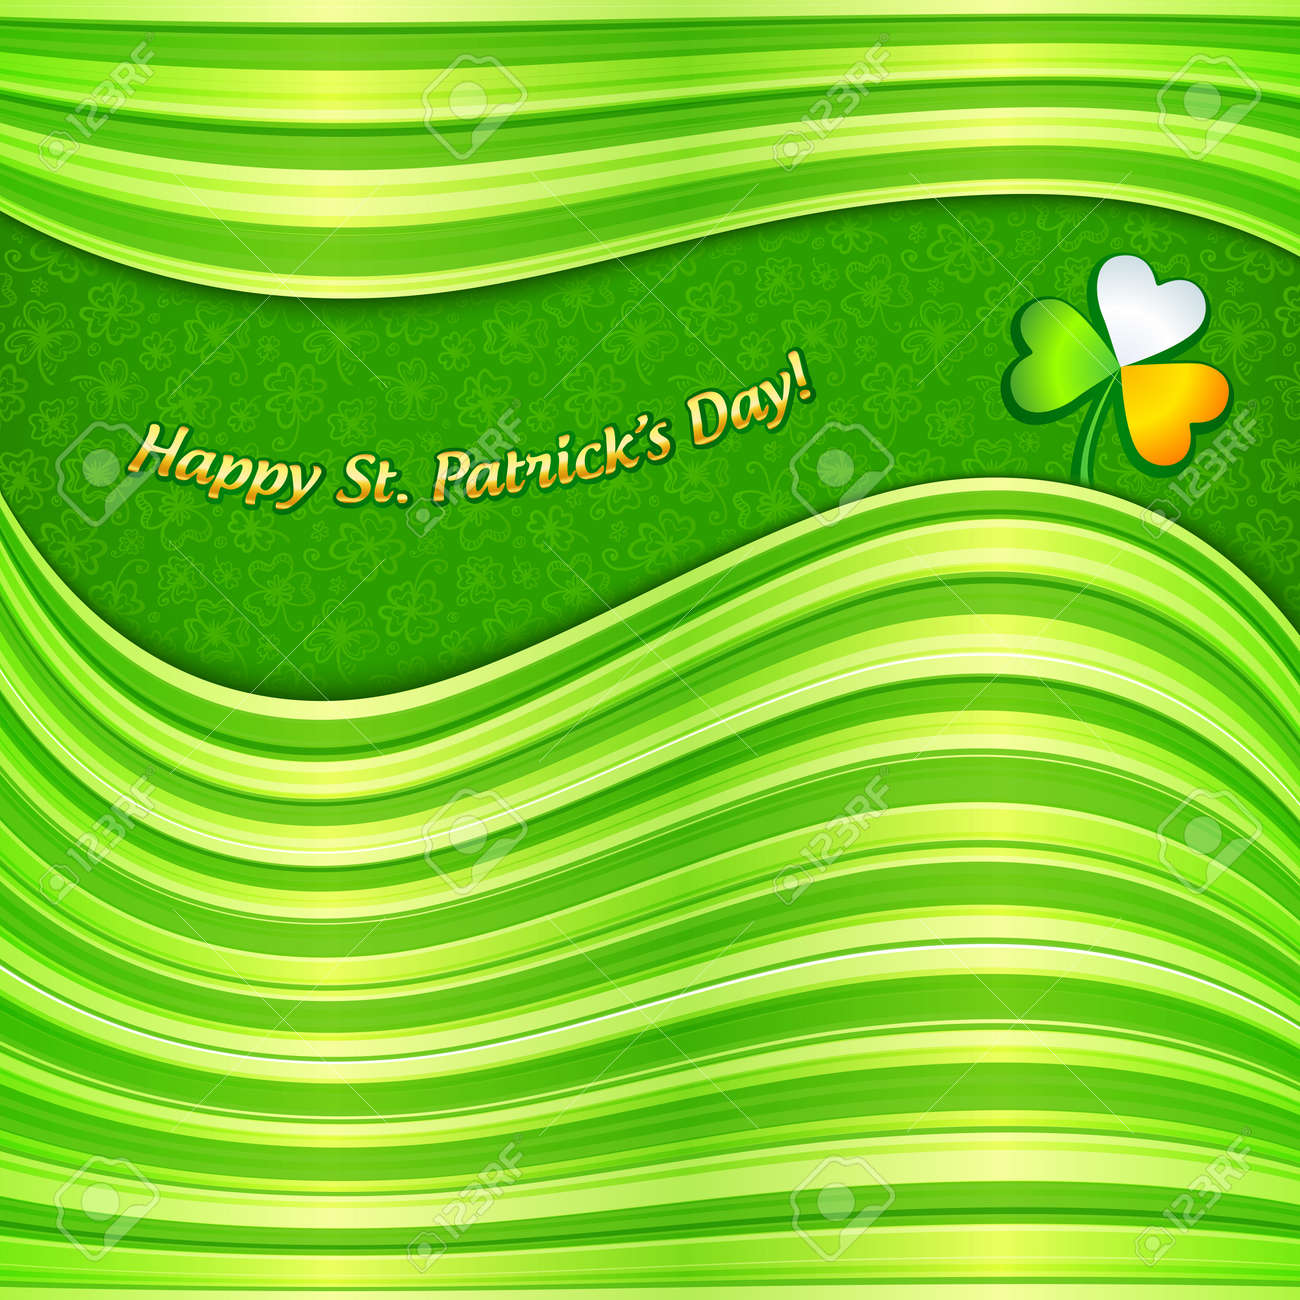 Green Patrick s Day abstract background greeting card Stock Vector - 18054518